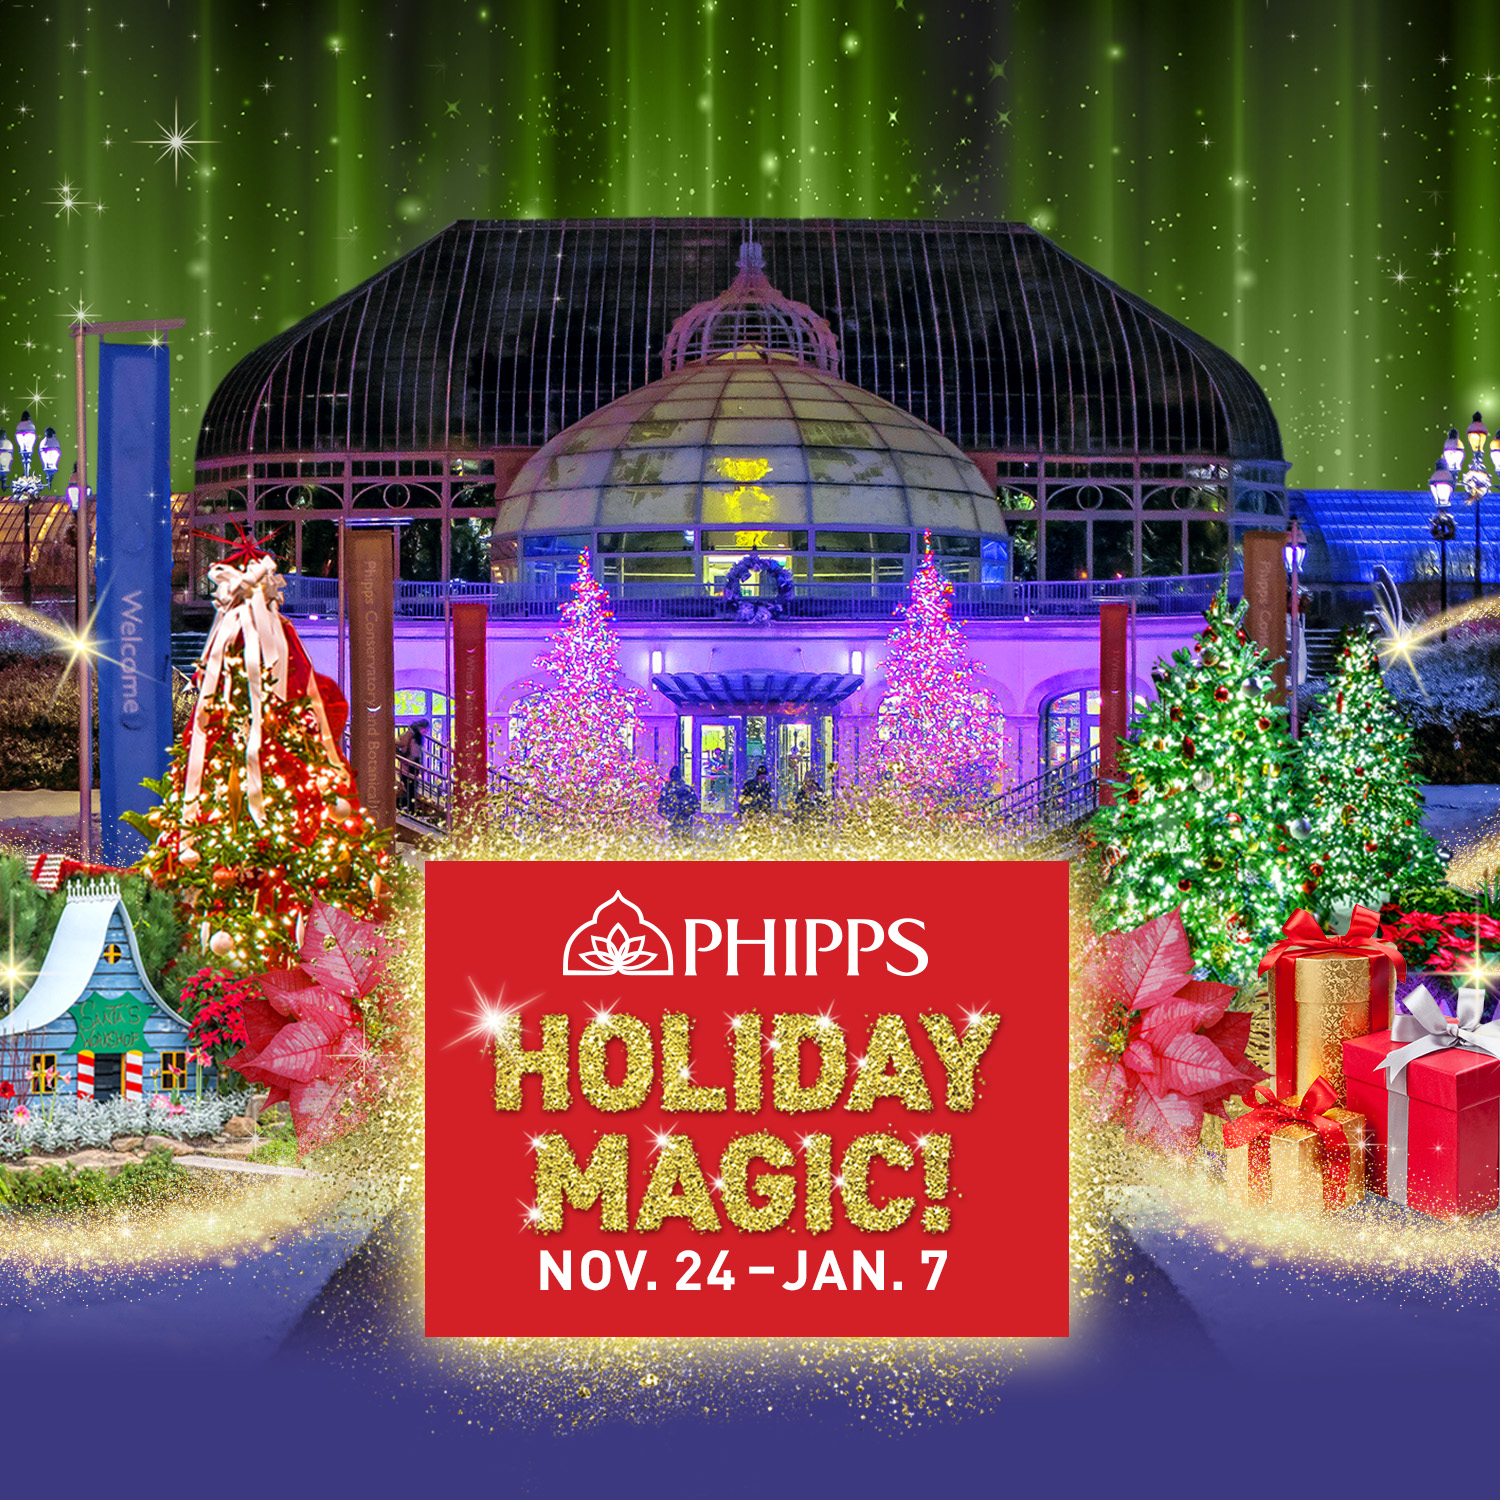 From Our Sponsor: Celebrate Holiday Magic at Phipps' Winter Flower Show and Light Garden!